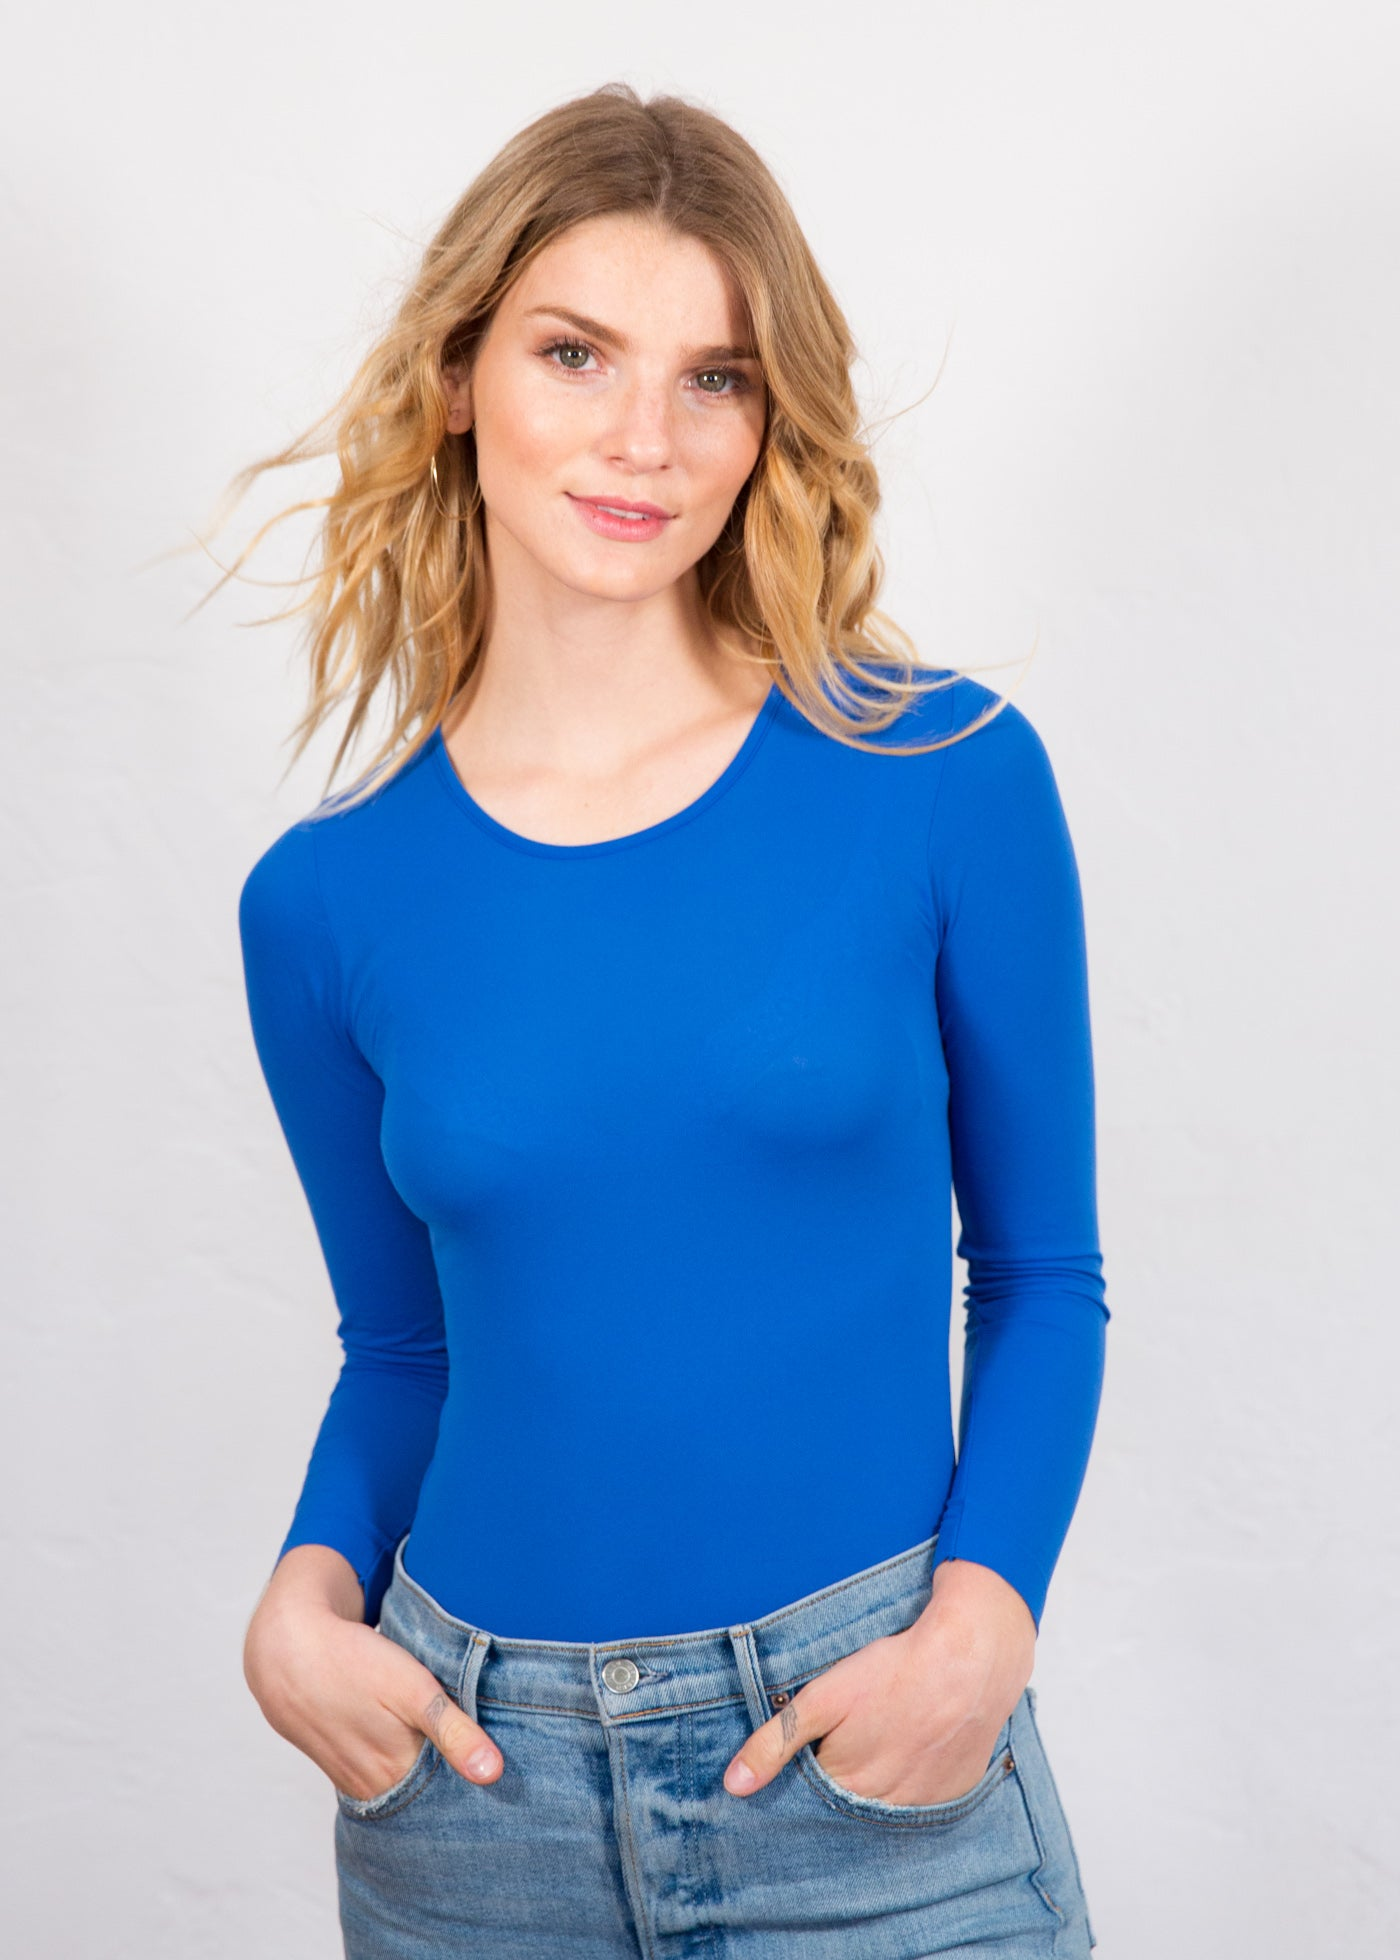 Solid Crew Neck Sheer Top - NEW COLORS!